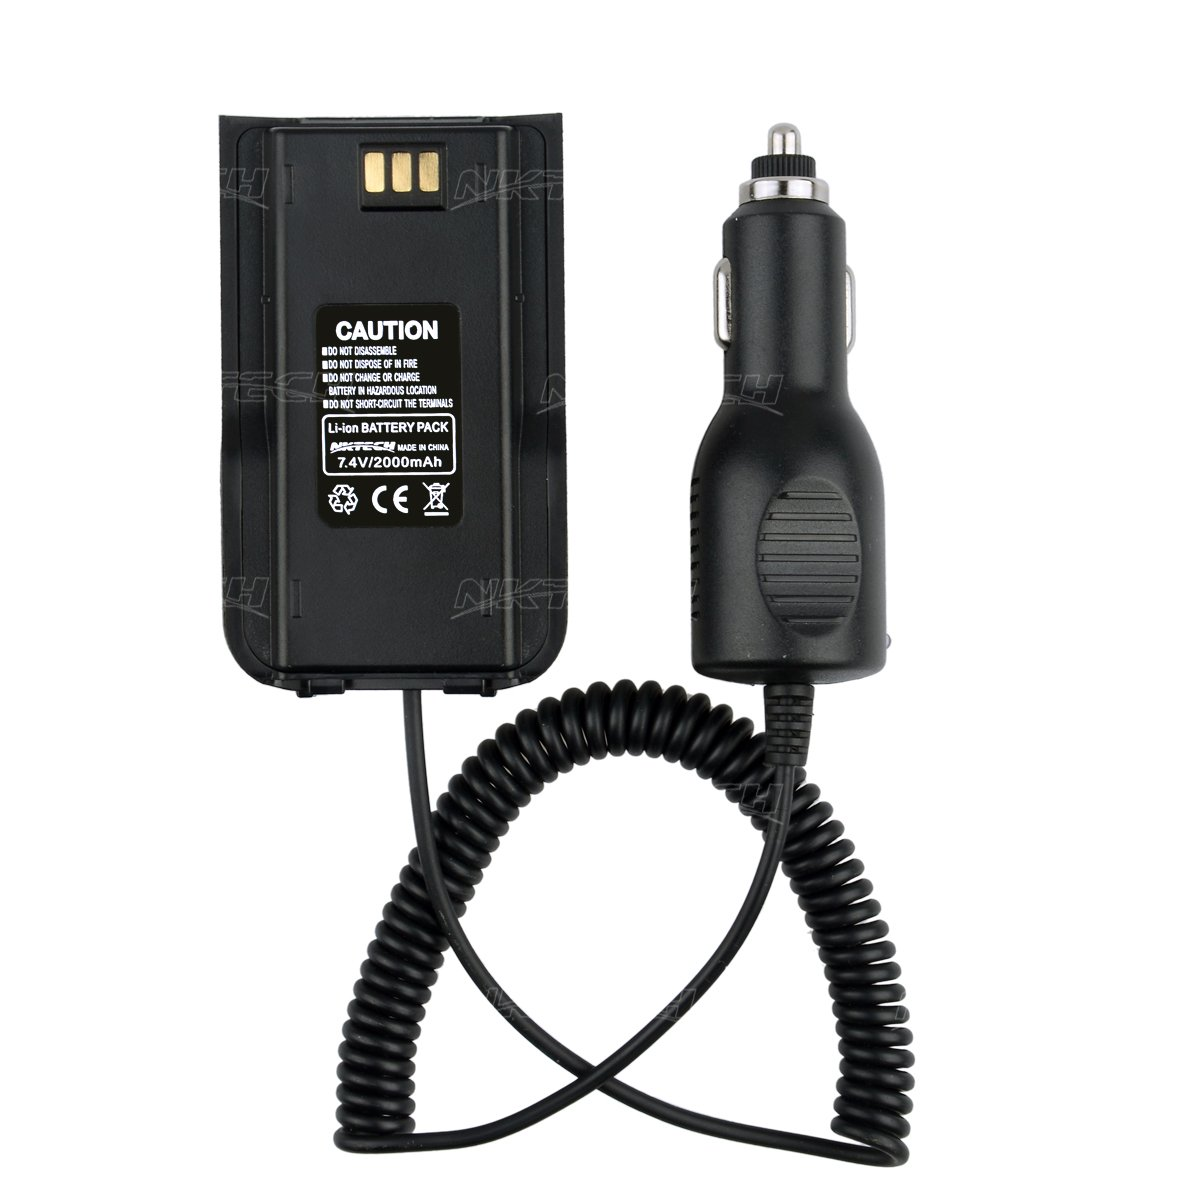 NKTECH Car Charger Battery Eliminator For TYT Tytera MD-380 NKTECH MD-380U MD-380V Digital Mobile Radio DMR Two Way Radio Transceiver Pack of 20 by NKTECH (Image #8)